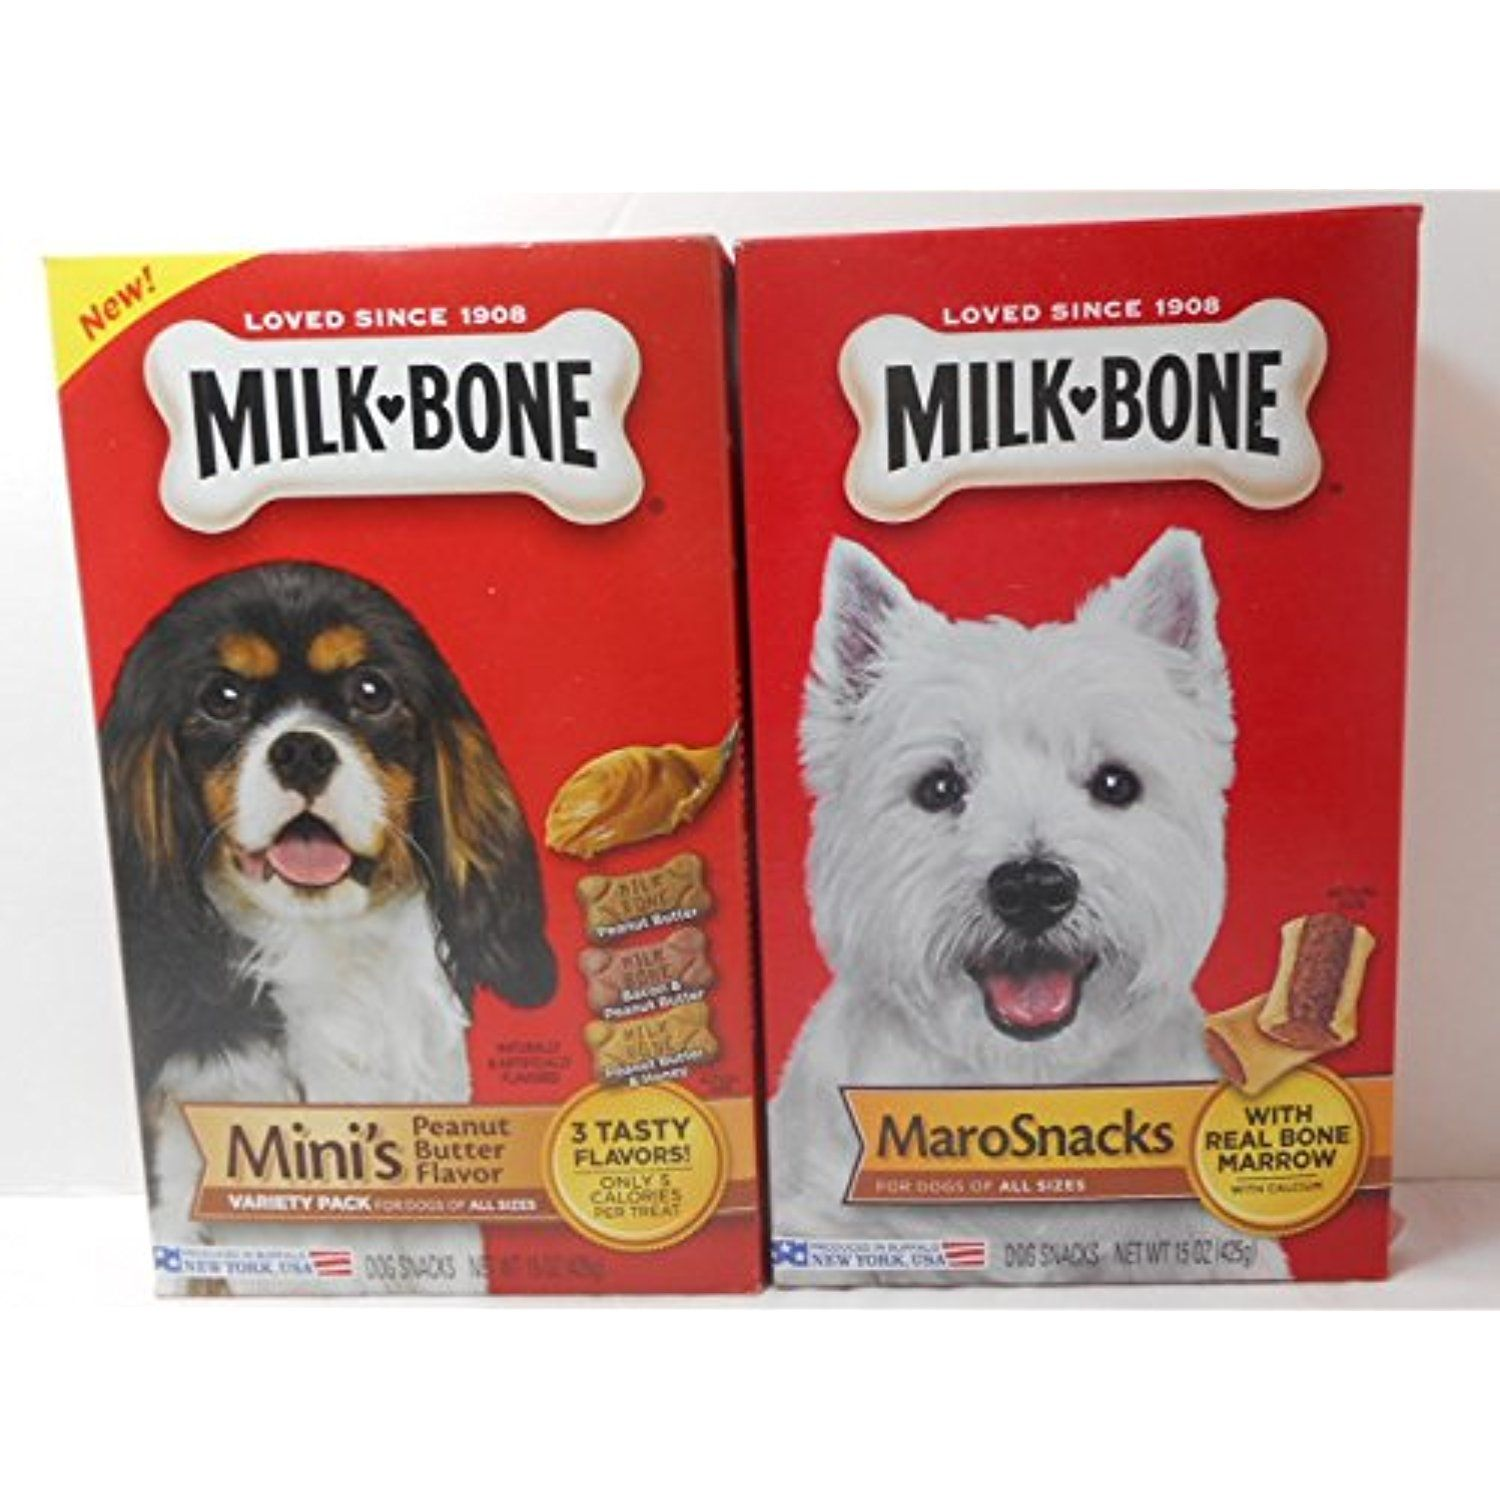 Milk Bone 15 Oz Pkg Maro Snacks Milk Bone 15 Oz Mini S Variety Pack Peanut Butter Bacon Peanut Butter And Peanut Peanut Butter Honey Milk Bone York Dog